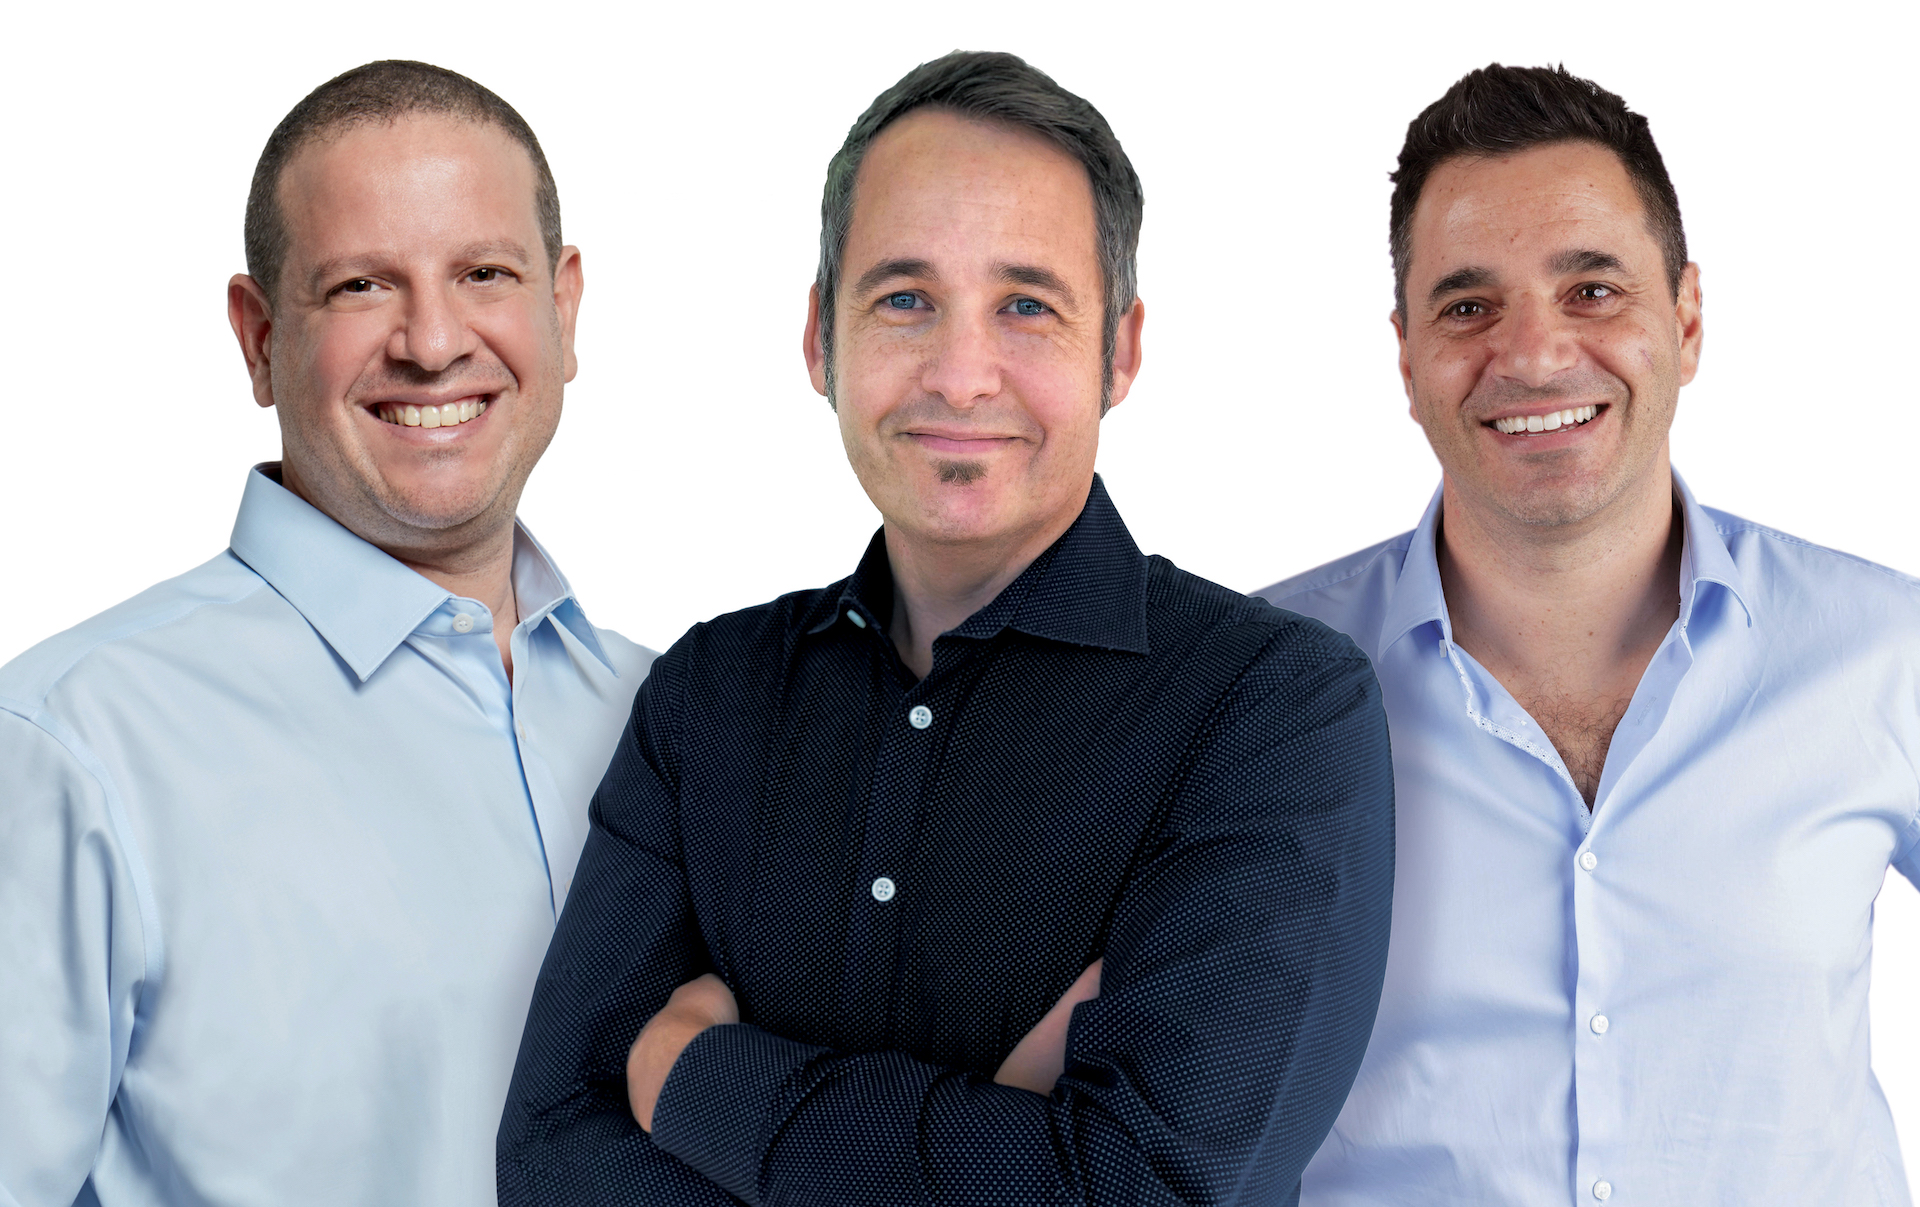 L-R: Joel Bar-El, Executive Chairman and Co-Founder; Justin Behar, Chief Executive Officer; and Dror Feldheim, President and Co-Founder